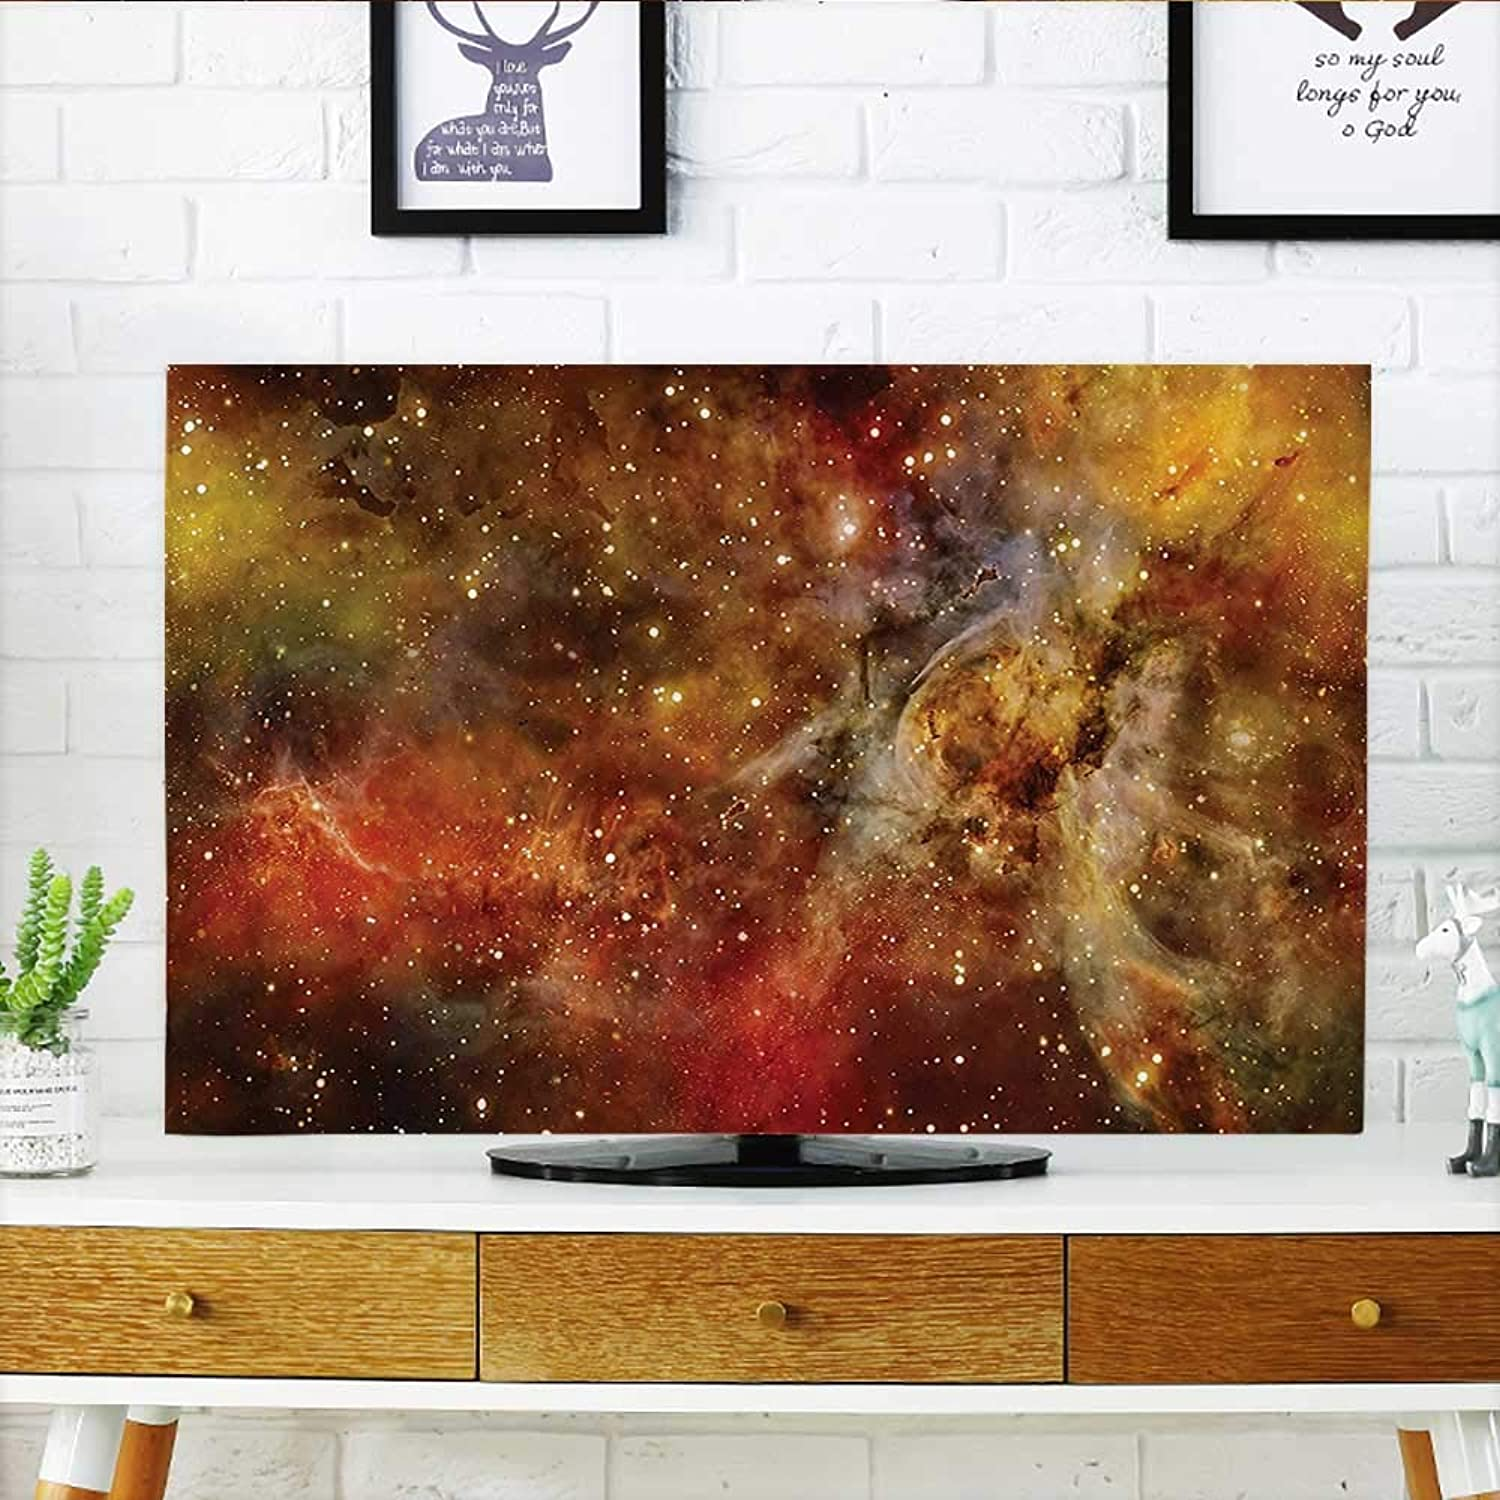 Jiahonghome Cover for Wall Mount tv Collection Nebula in Deep Outer Space with Star Clusters Astro Lights Galaxy Universe Cover Mount tv W32 x H51 INCH TV 55